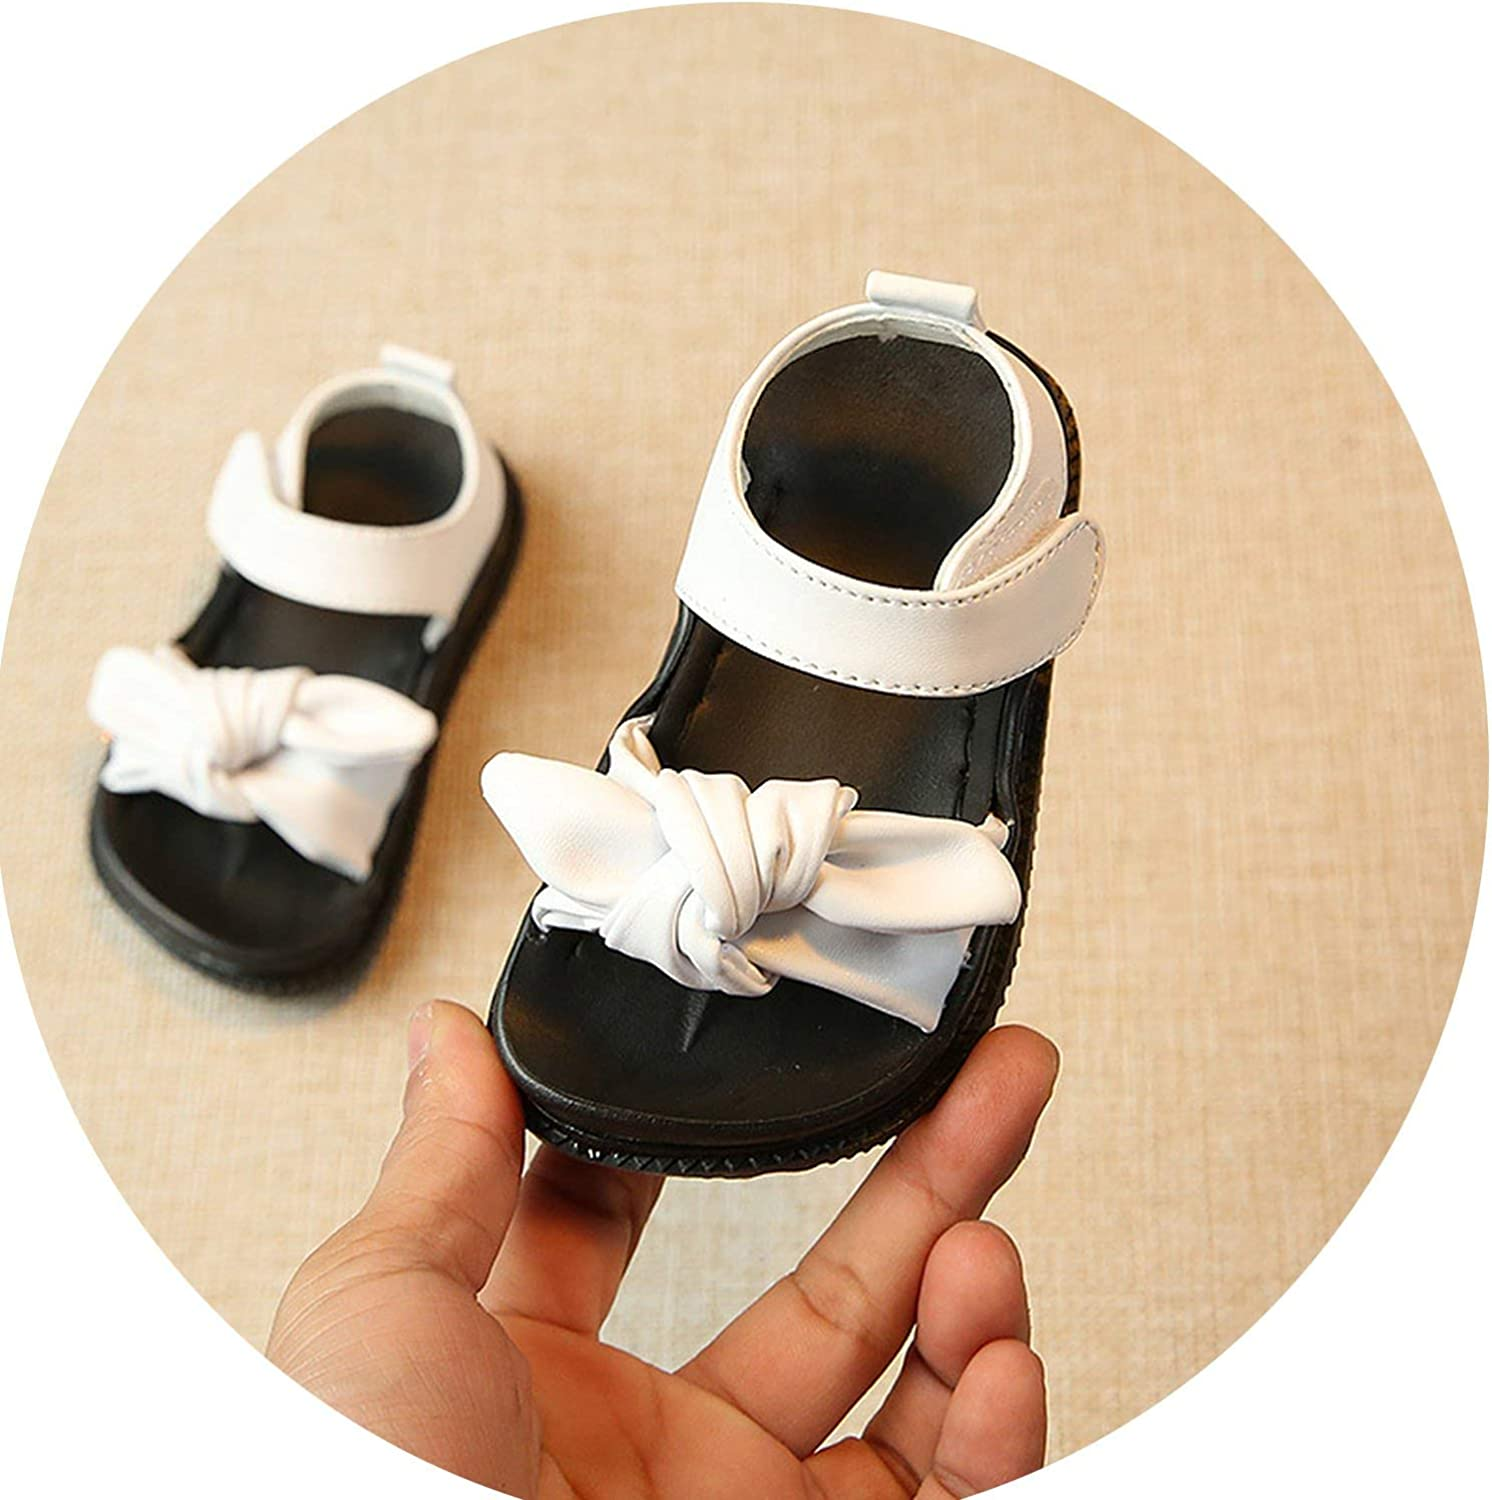 Tthappy76 0-6Y Baby Sandals Kids Girl White Sandals Pink Princess Casual PU Leather Fashion